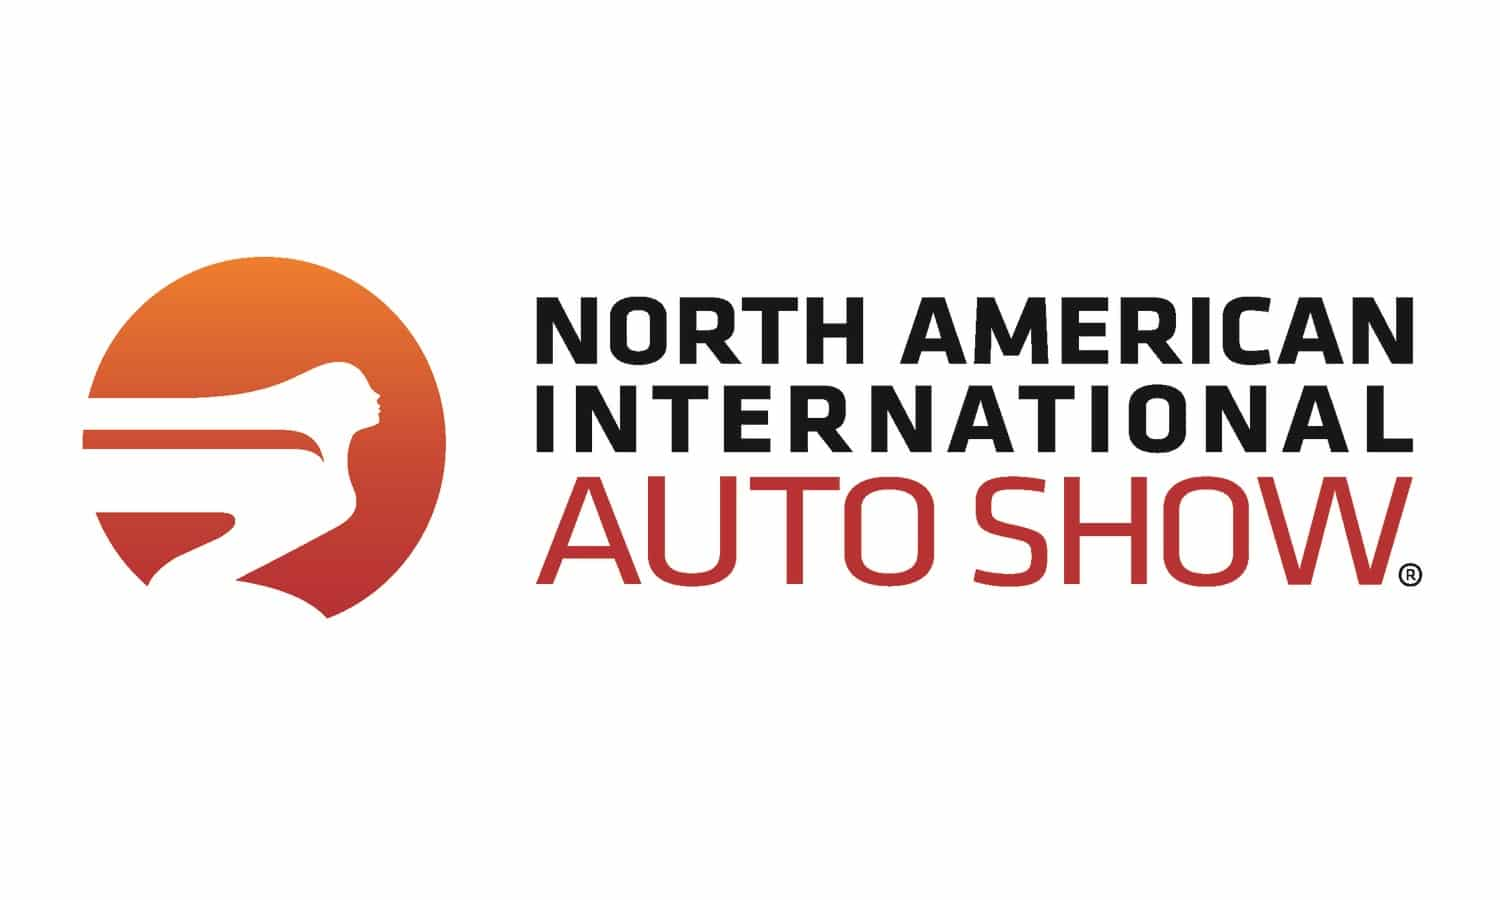 North American International Auto Show (NAIAS) logo - Salón de Detroit logo